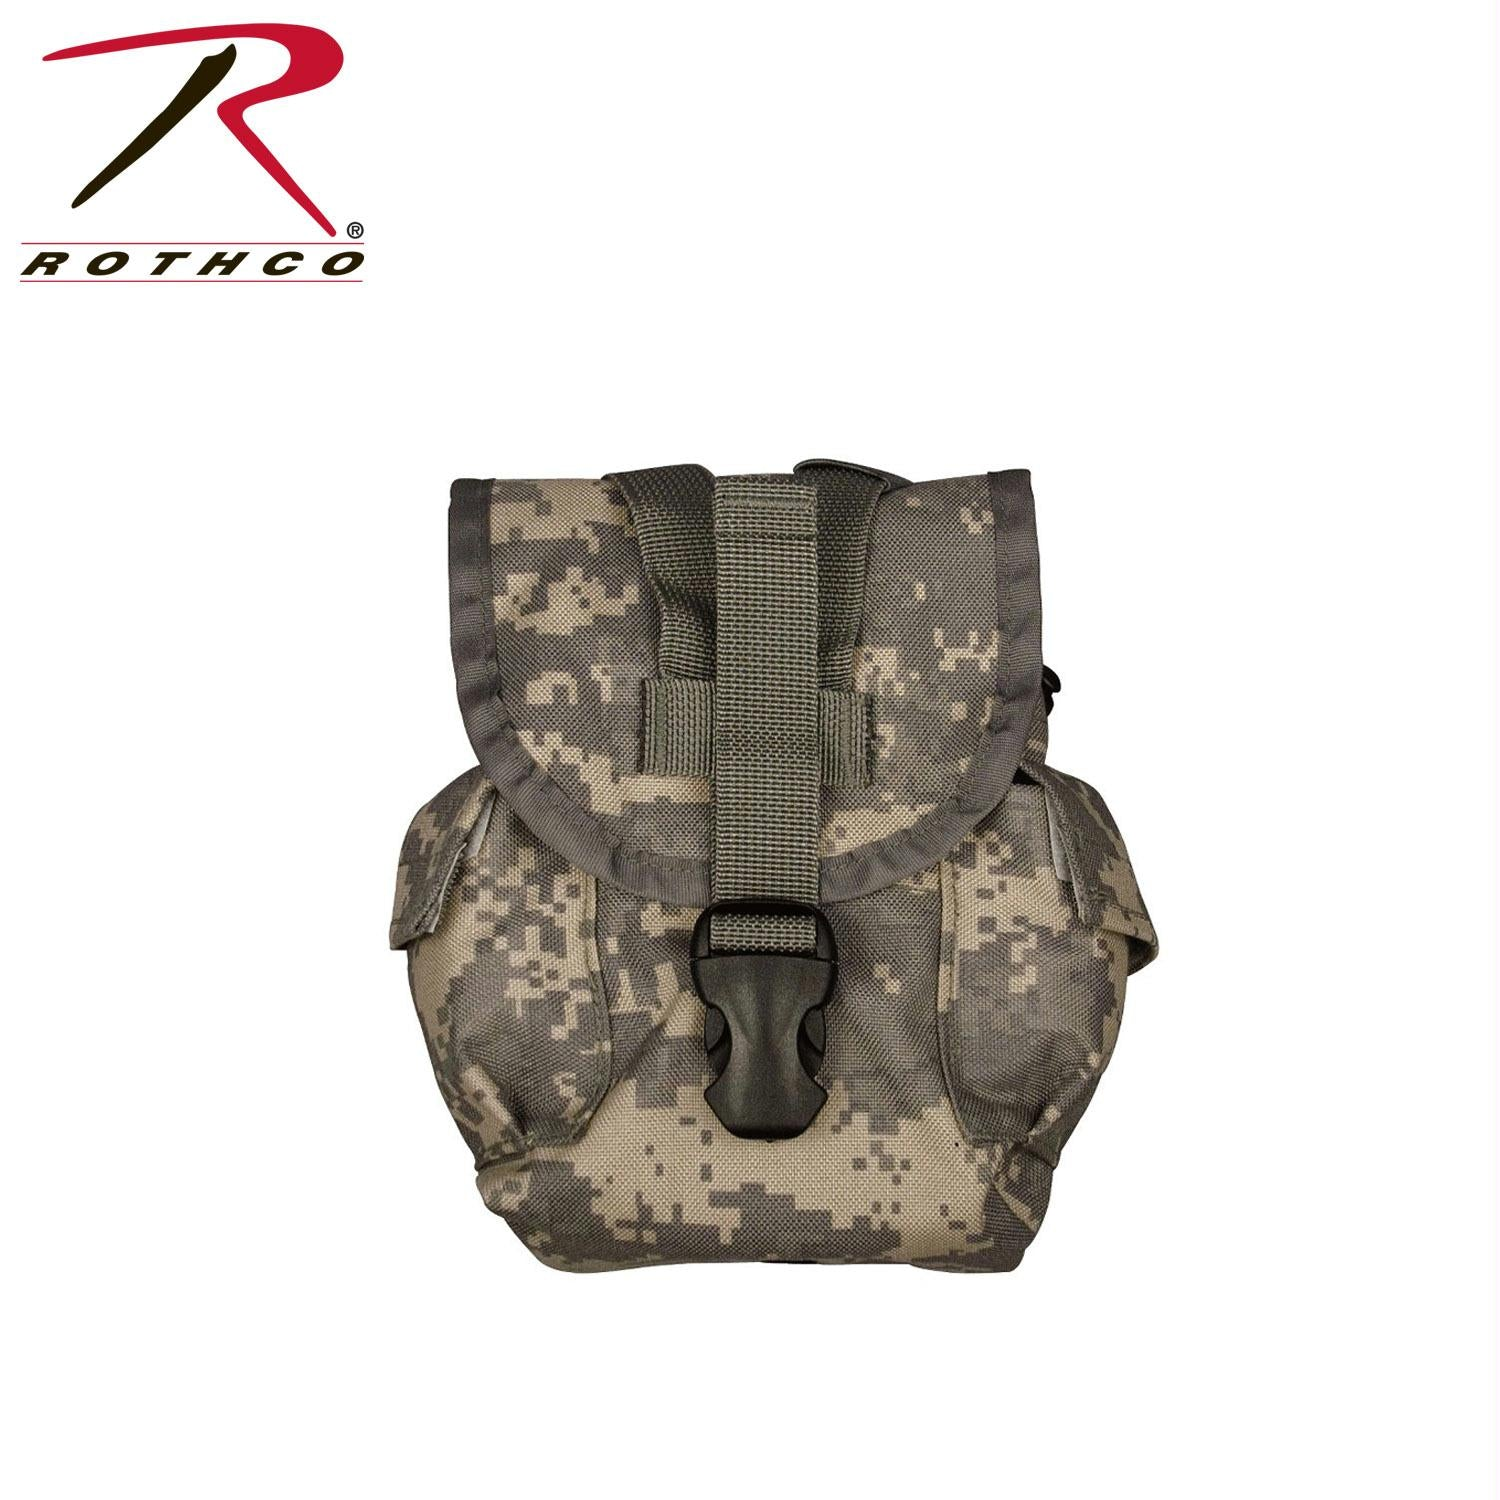 Rothco MOLLE II Canteen & Utility Pouch - ACU Digital Camo